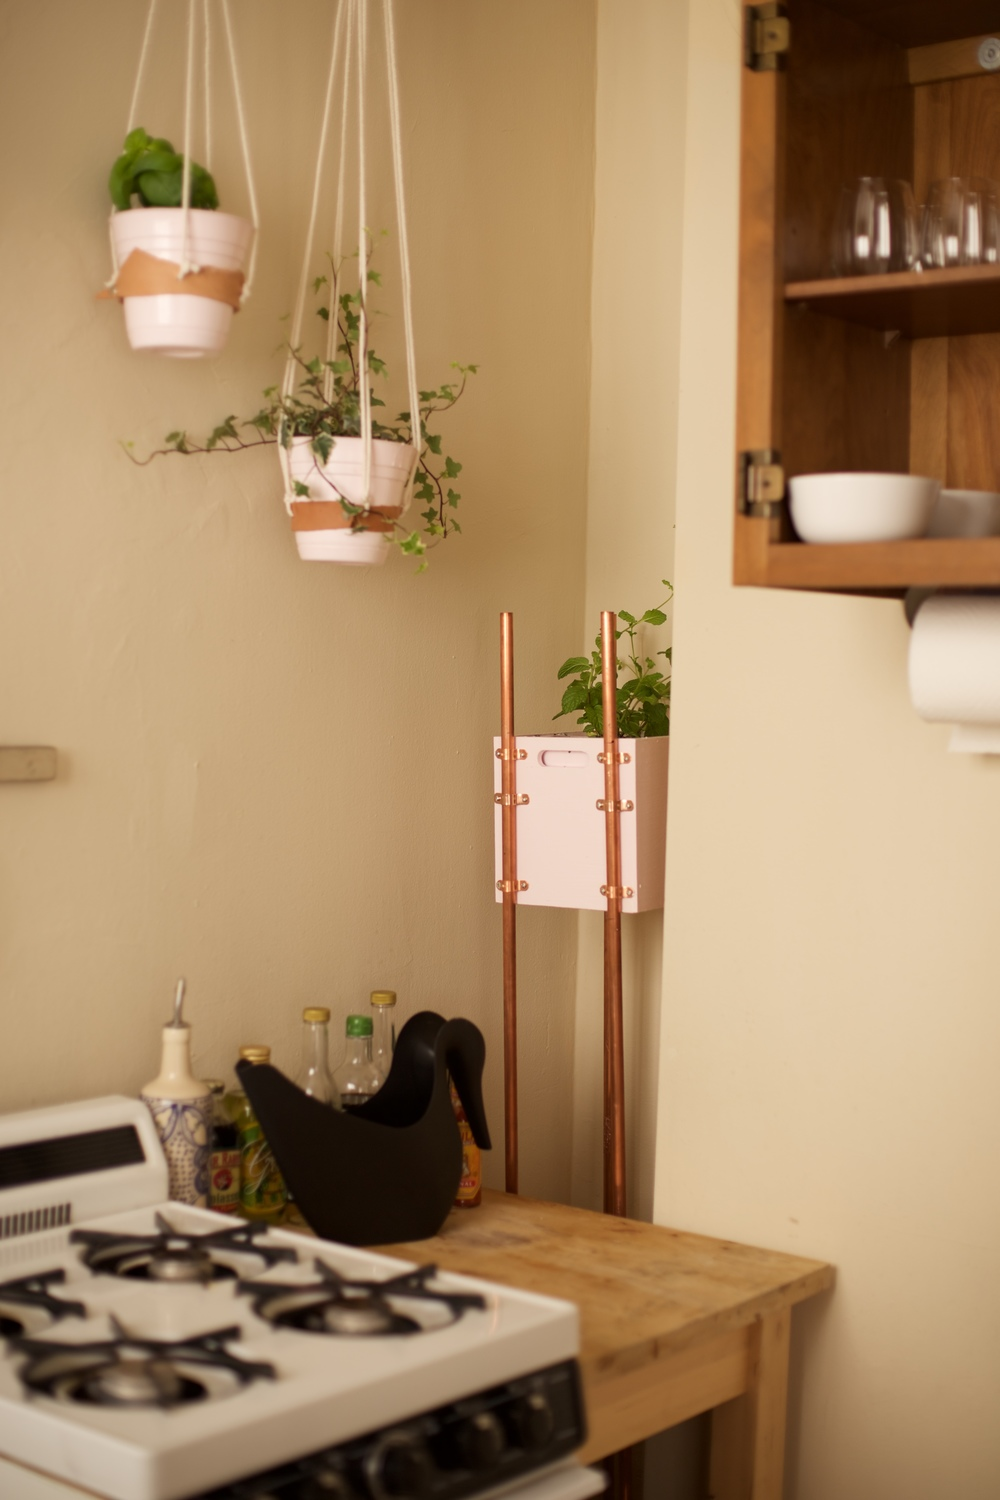 Plants in a tiny apartment kitchen